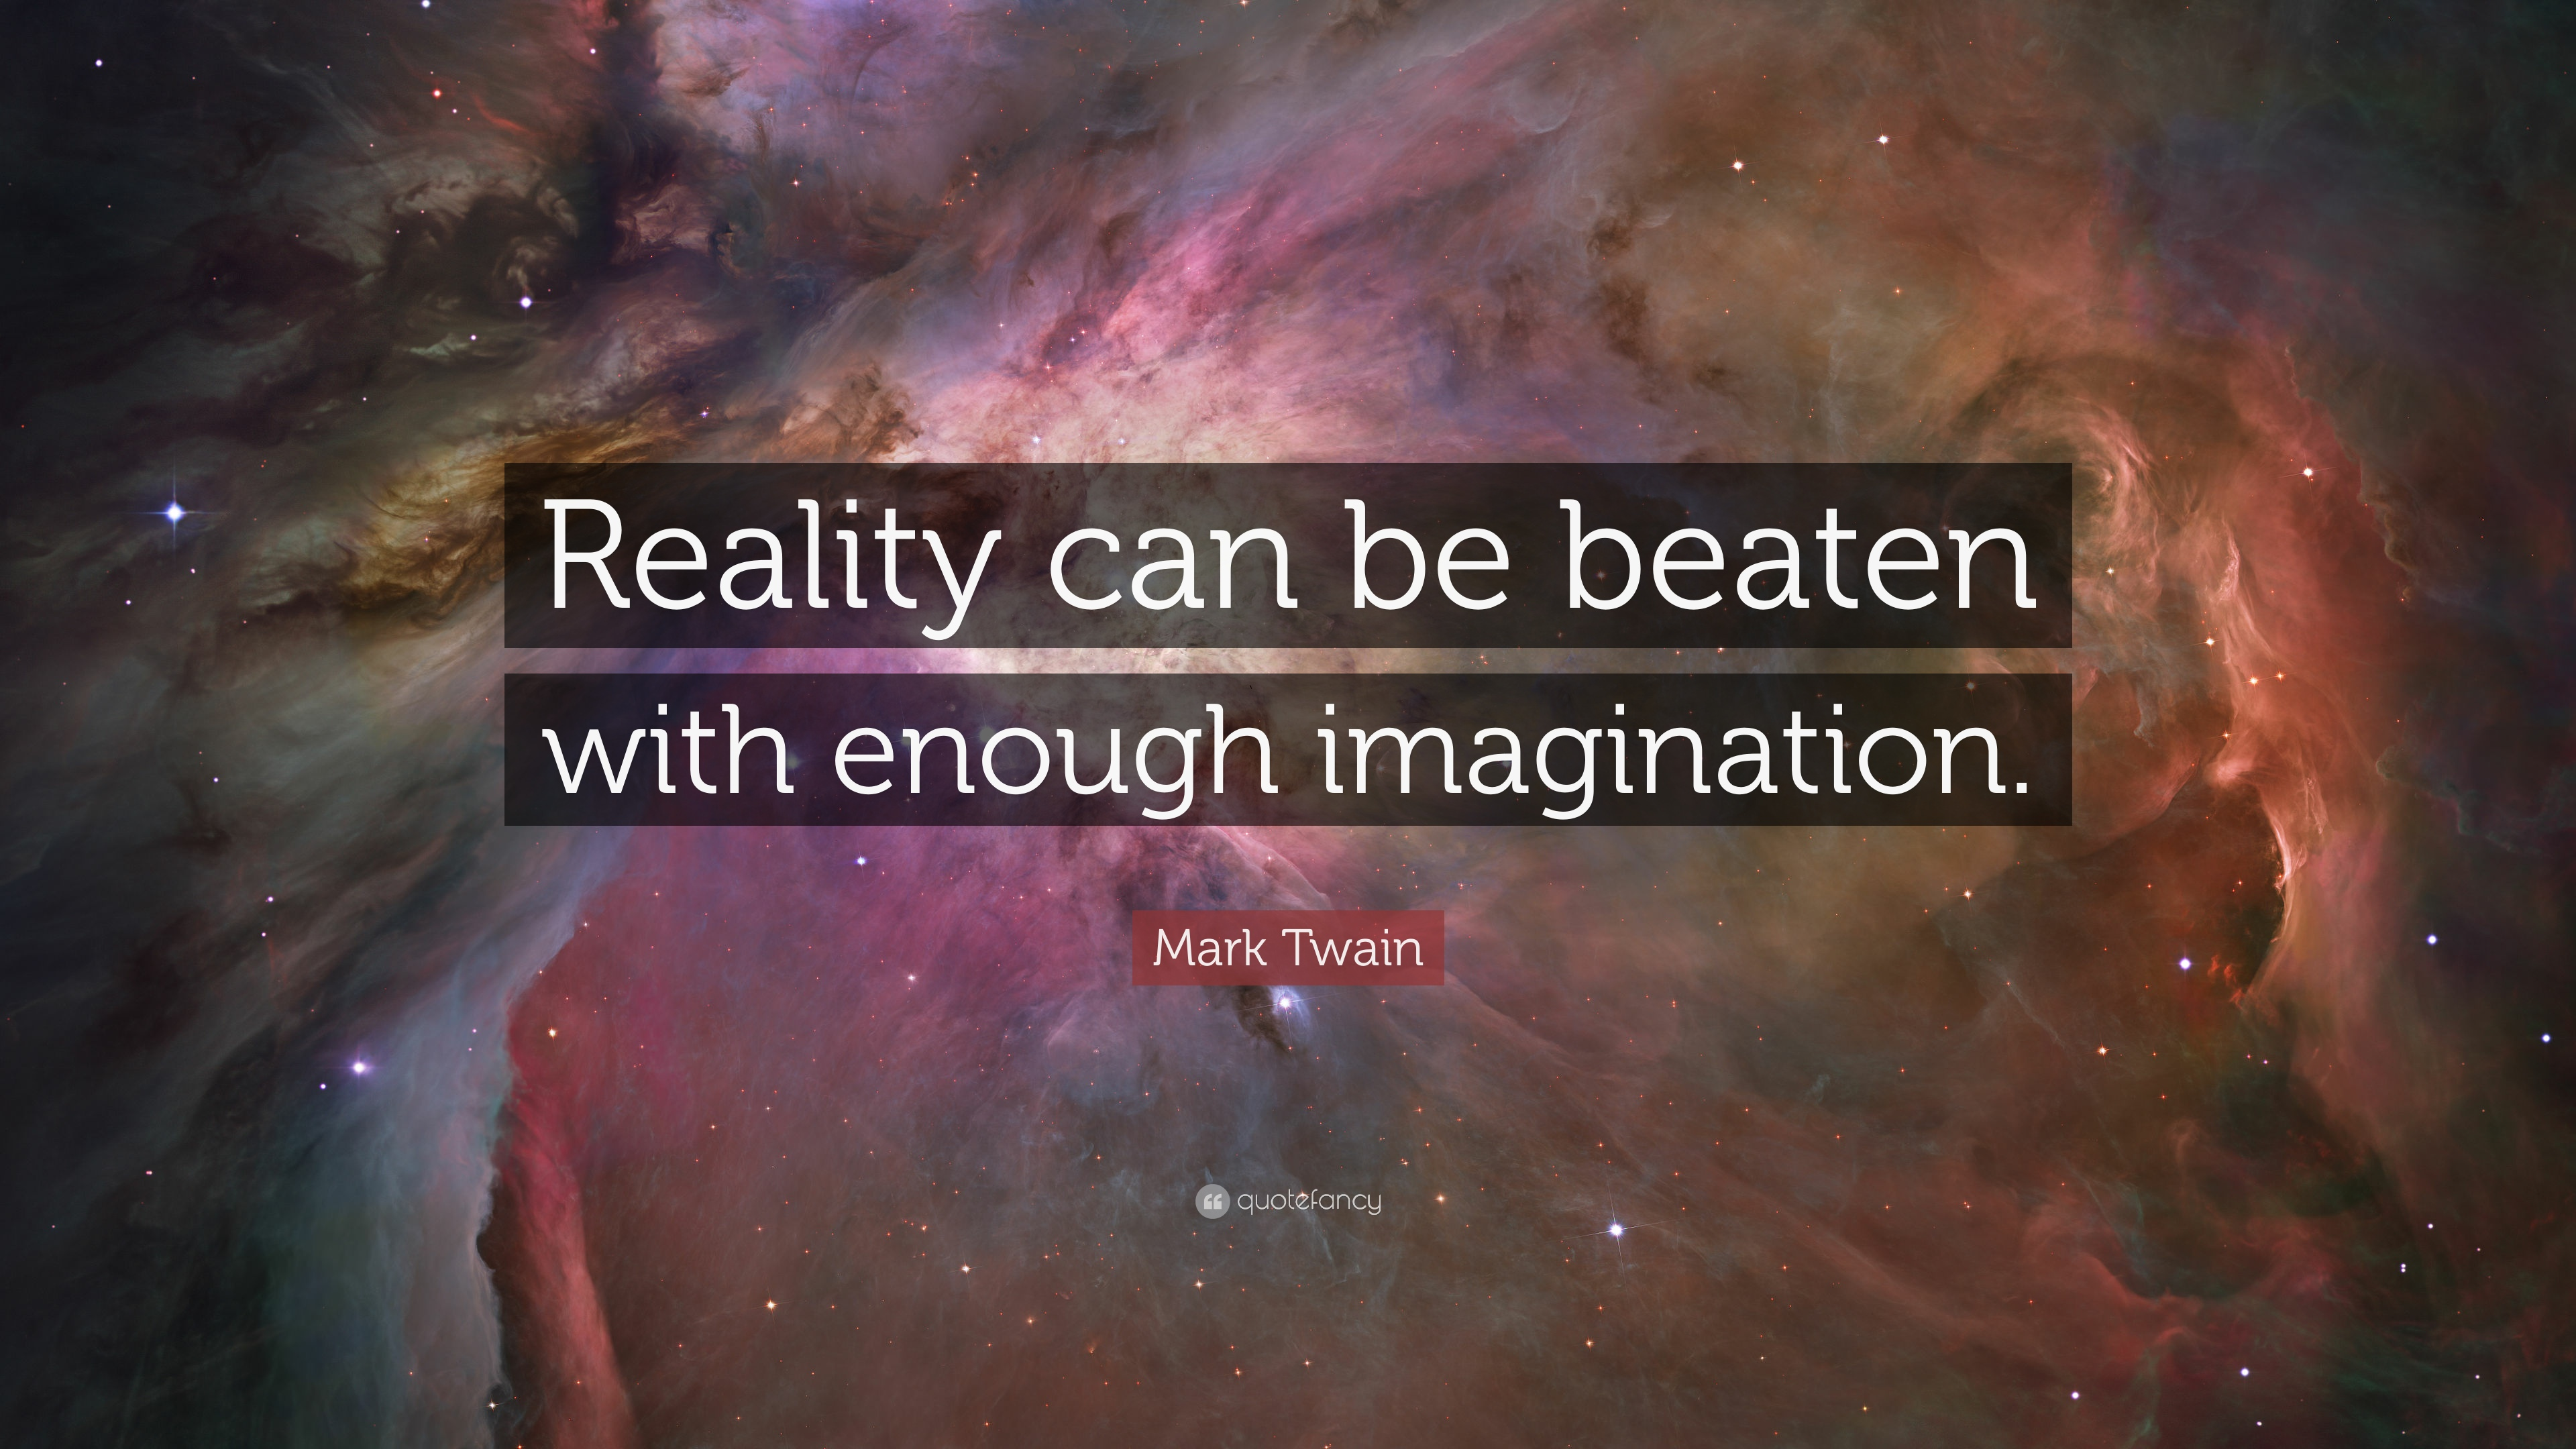 Reality can be beaten with enough imagination- Mark Twain (3840 x 2160)